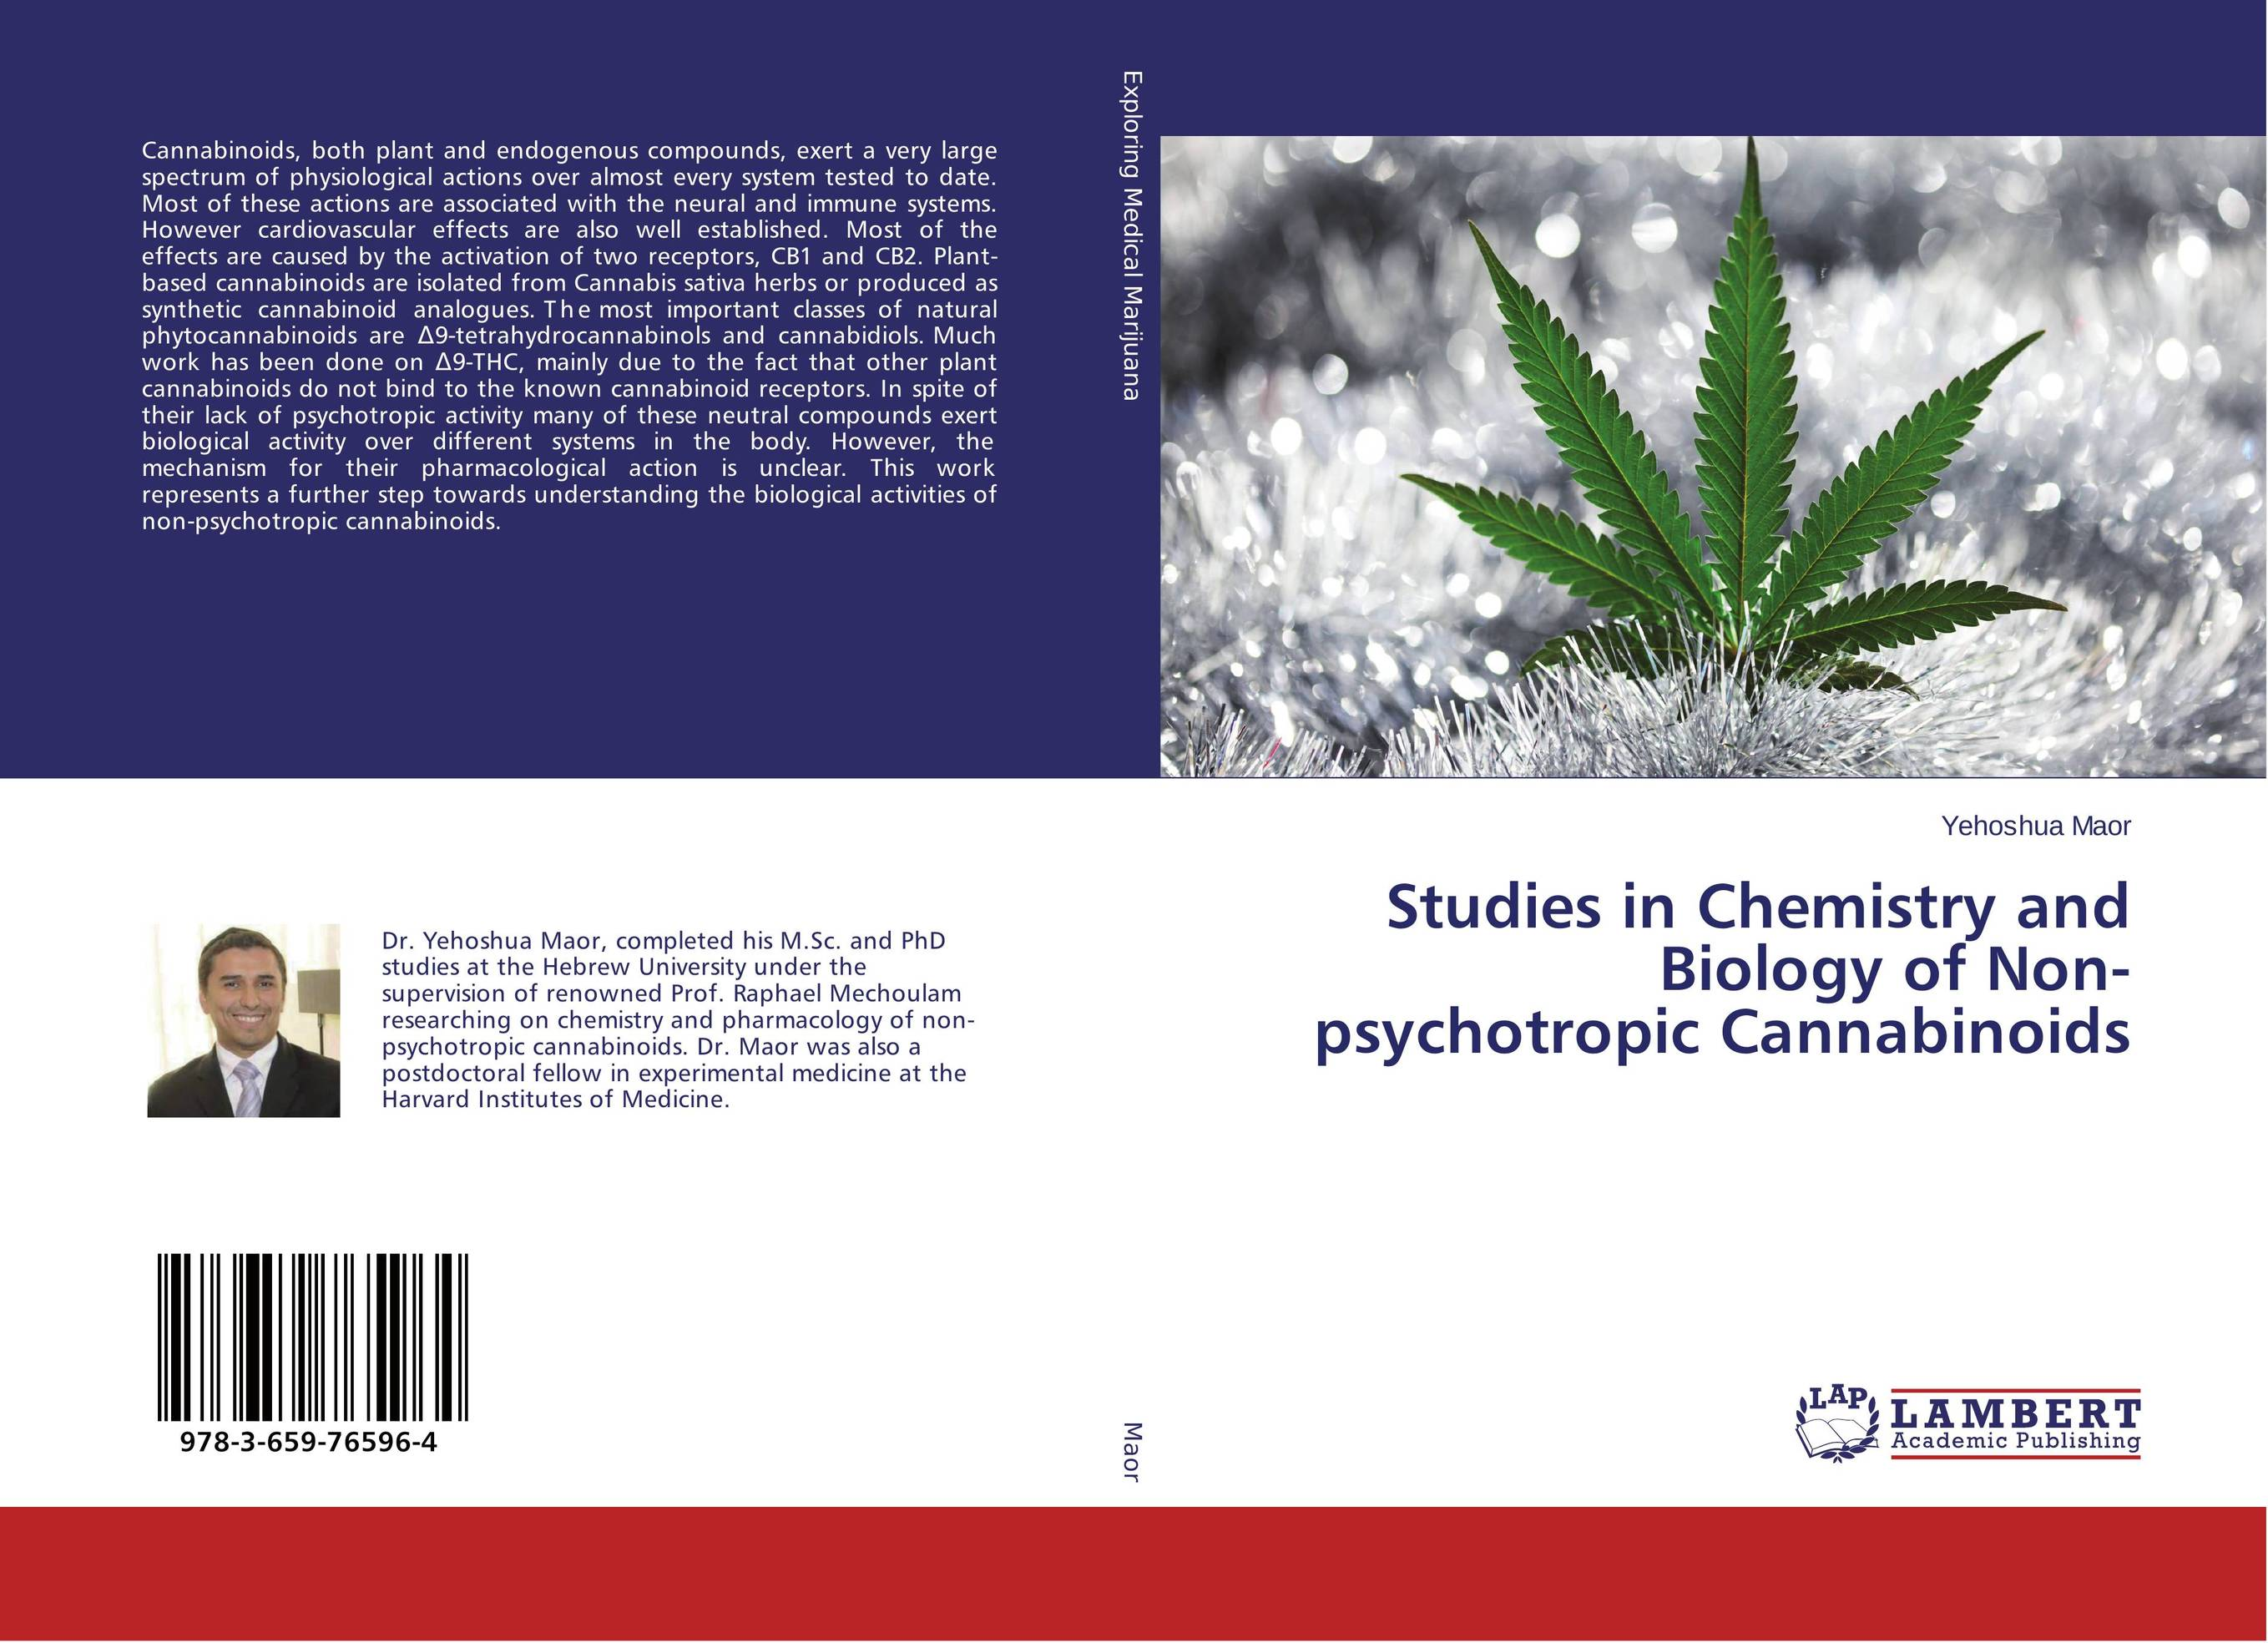 Studies in Chemistry and Biology of Non-psychotropic Cannabinoids chemistry and biology of heparin and heparan sulfate